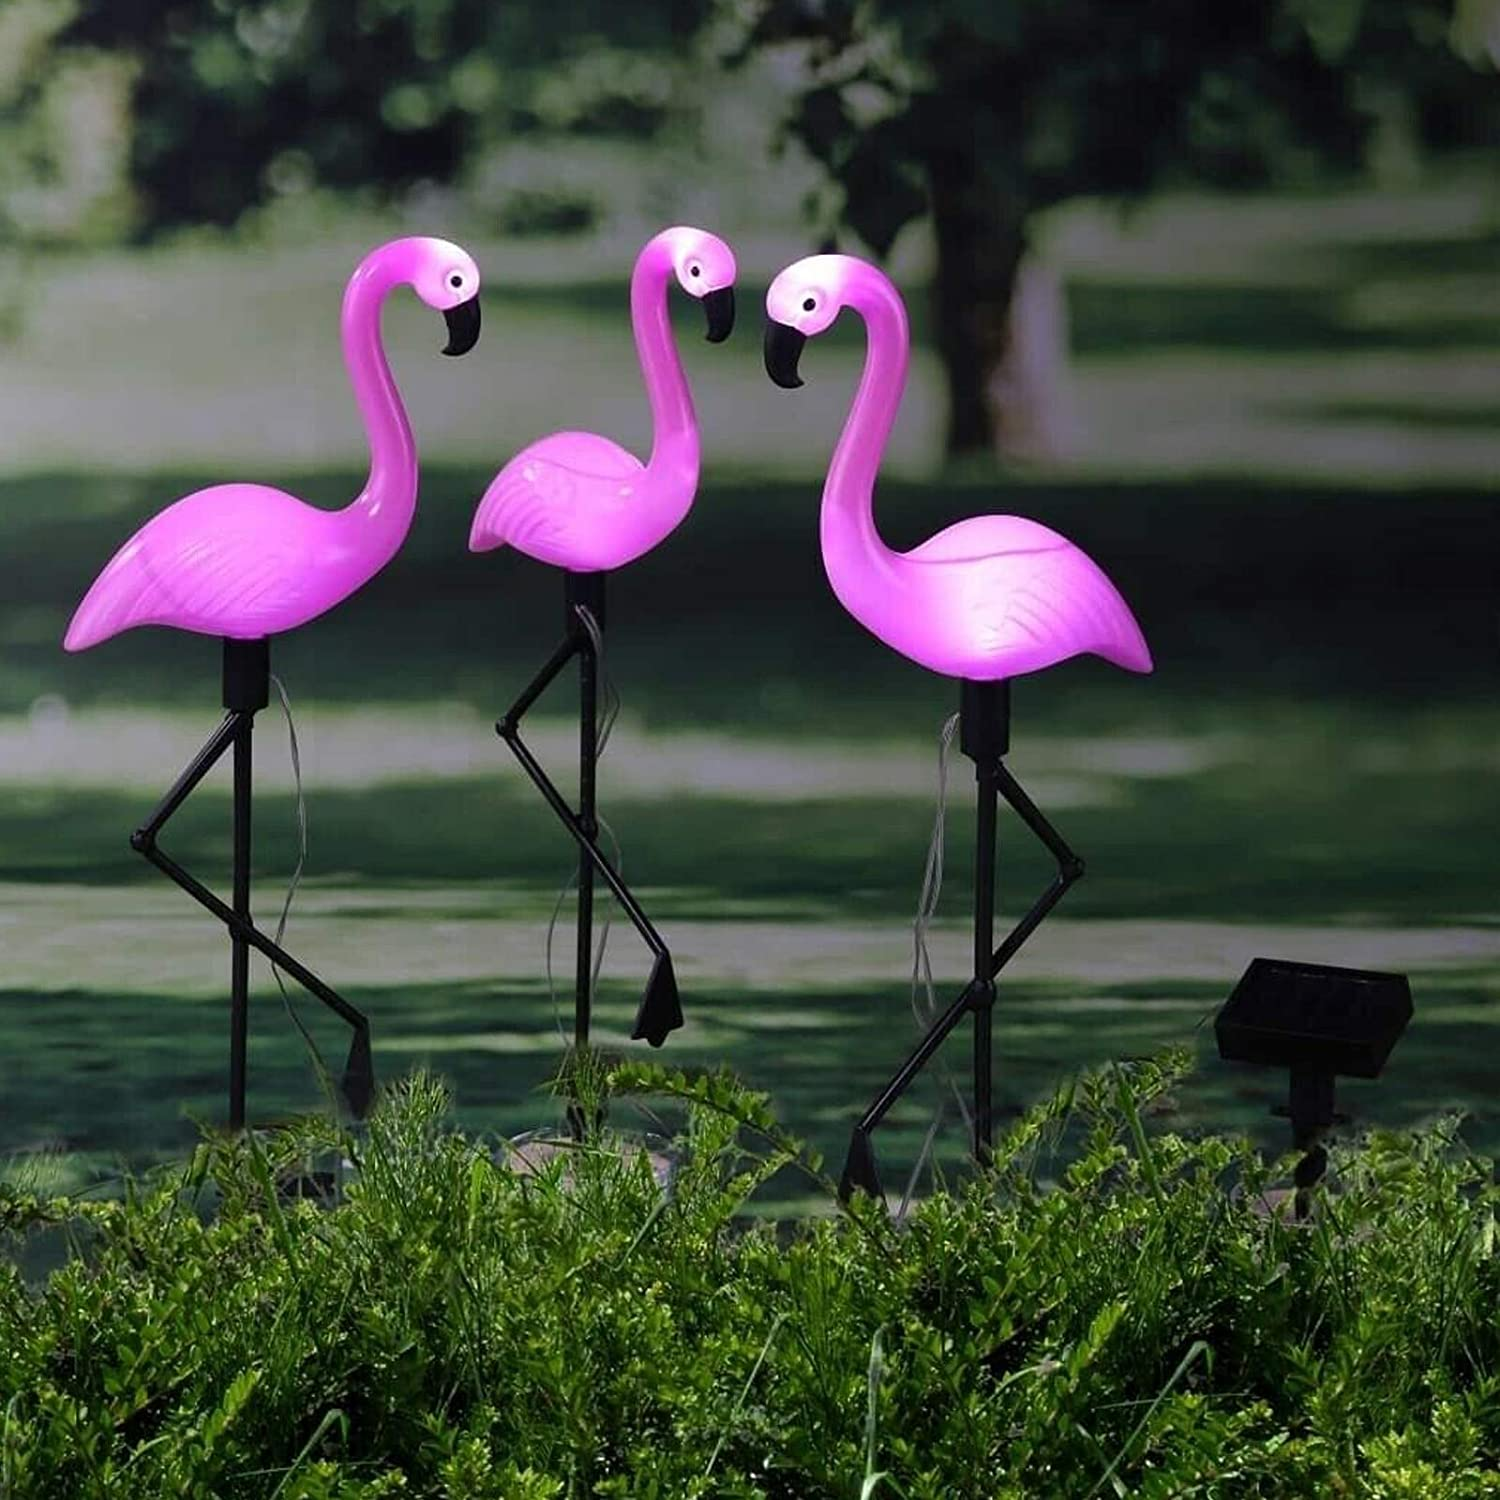 Pink 3 Pack Flamingo Garden Led Stake Lamps Solar Powered Waterproof Home Pathway Lawn Yard Landscape Path Decorative Night Light puliao Outdoor Solar Lights